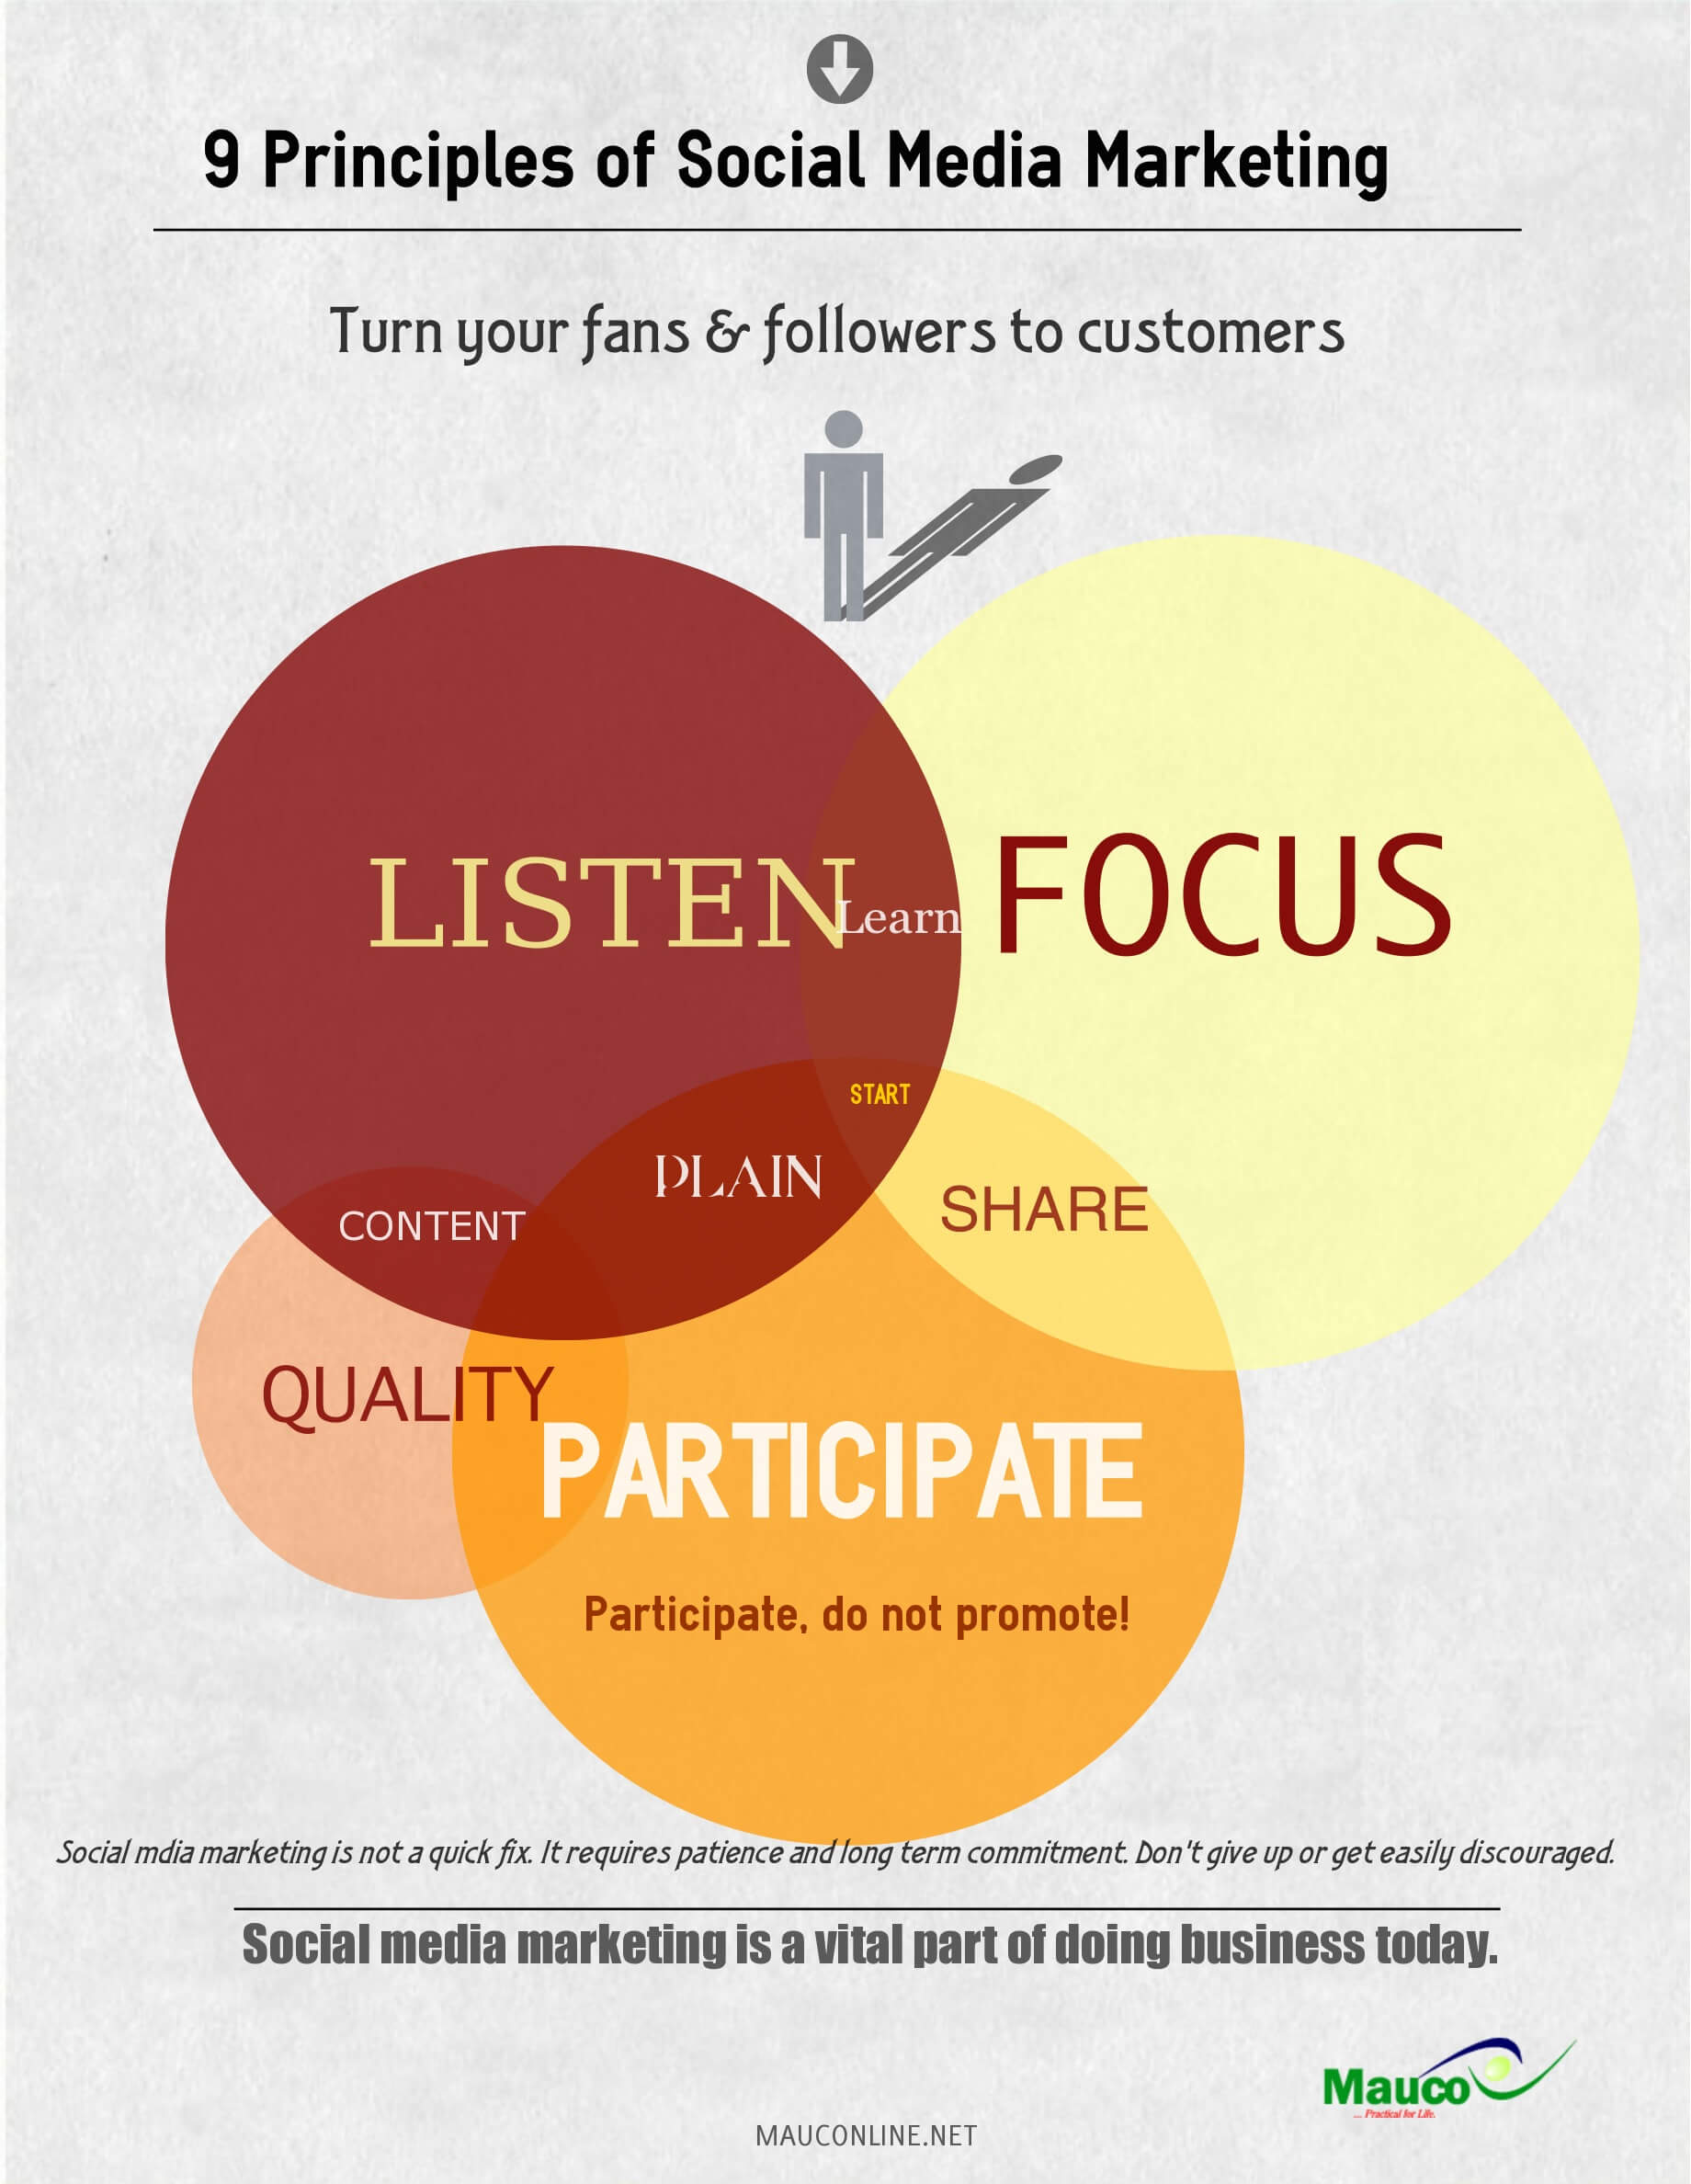 9 Principles of Social Media Marketing-infographic